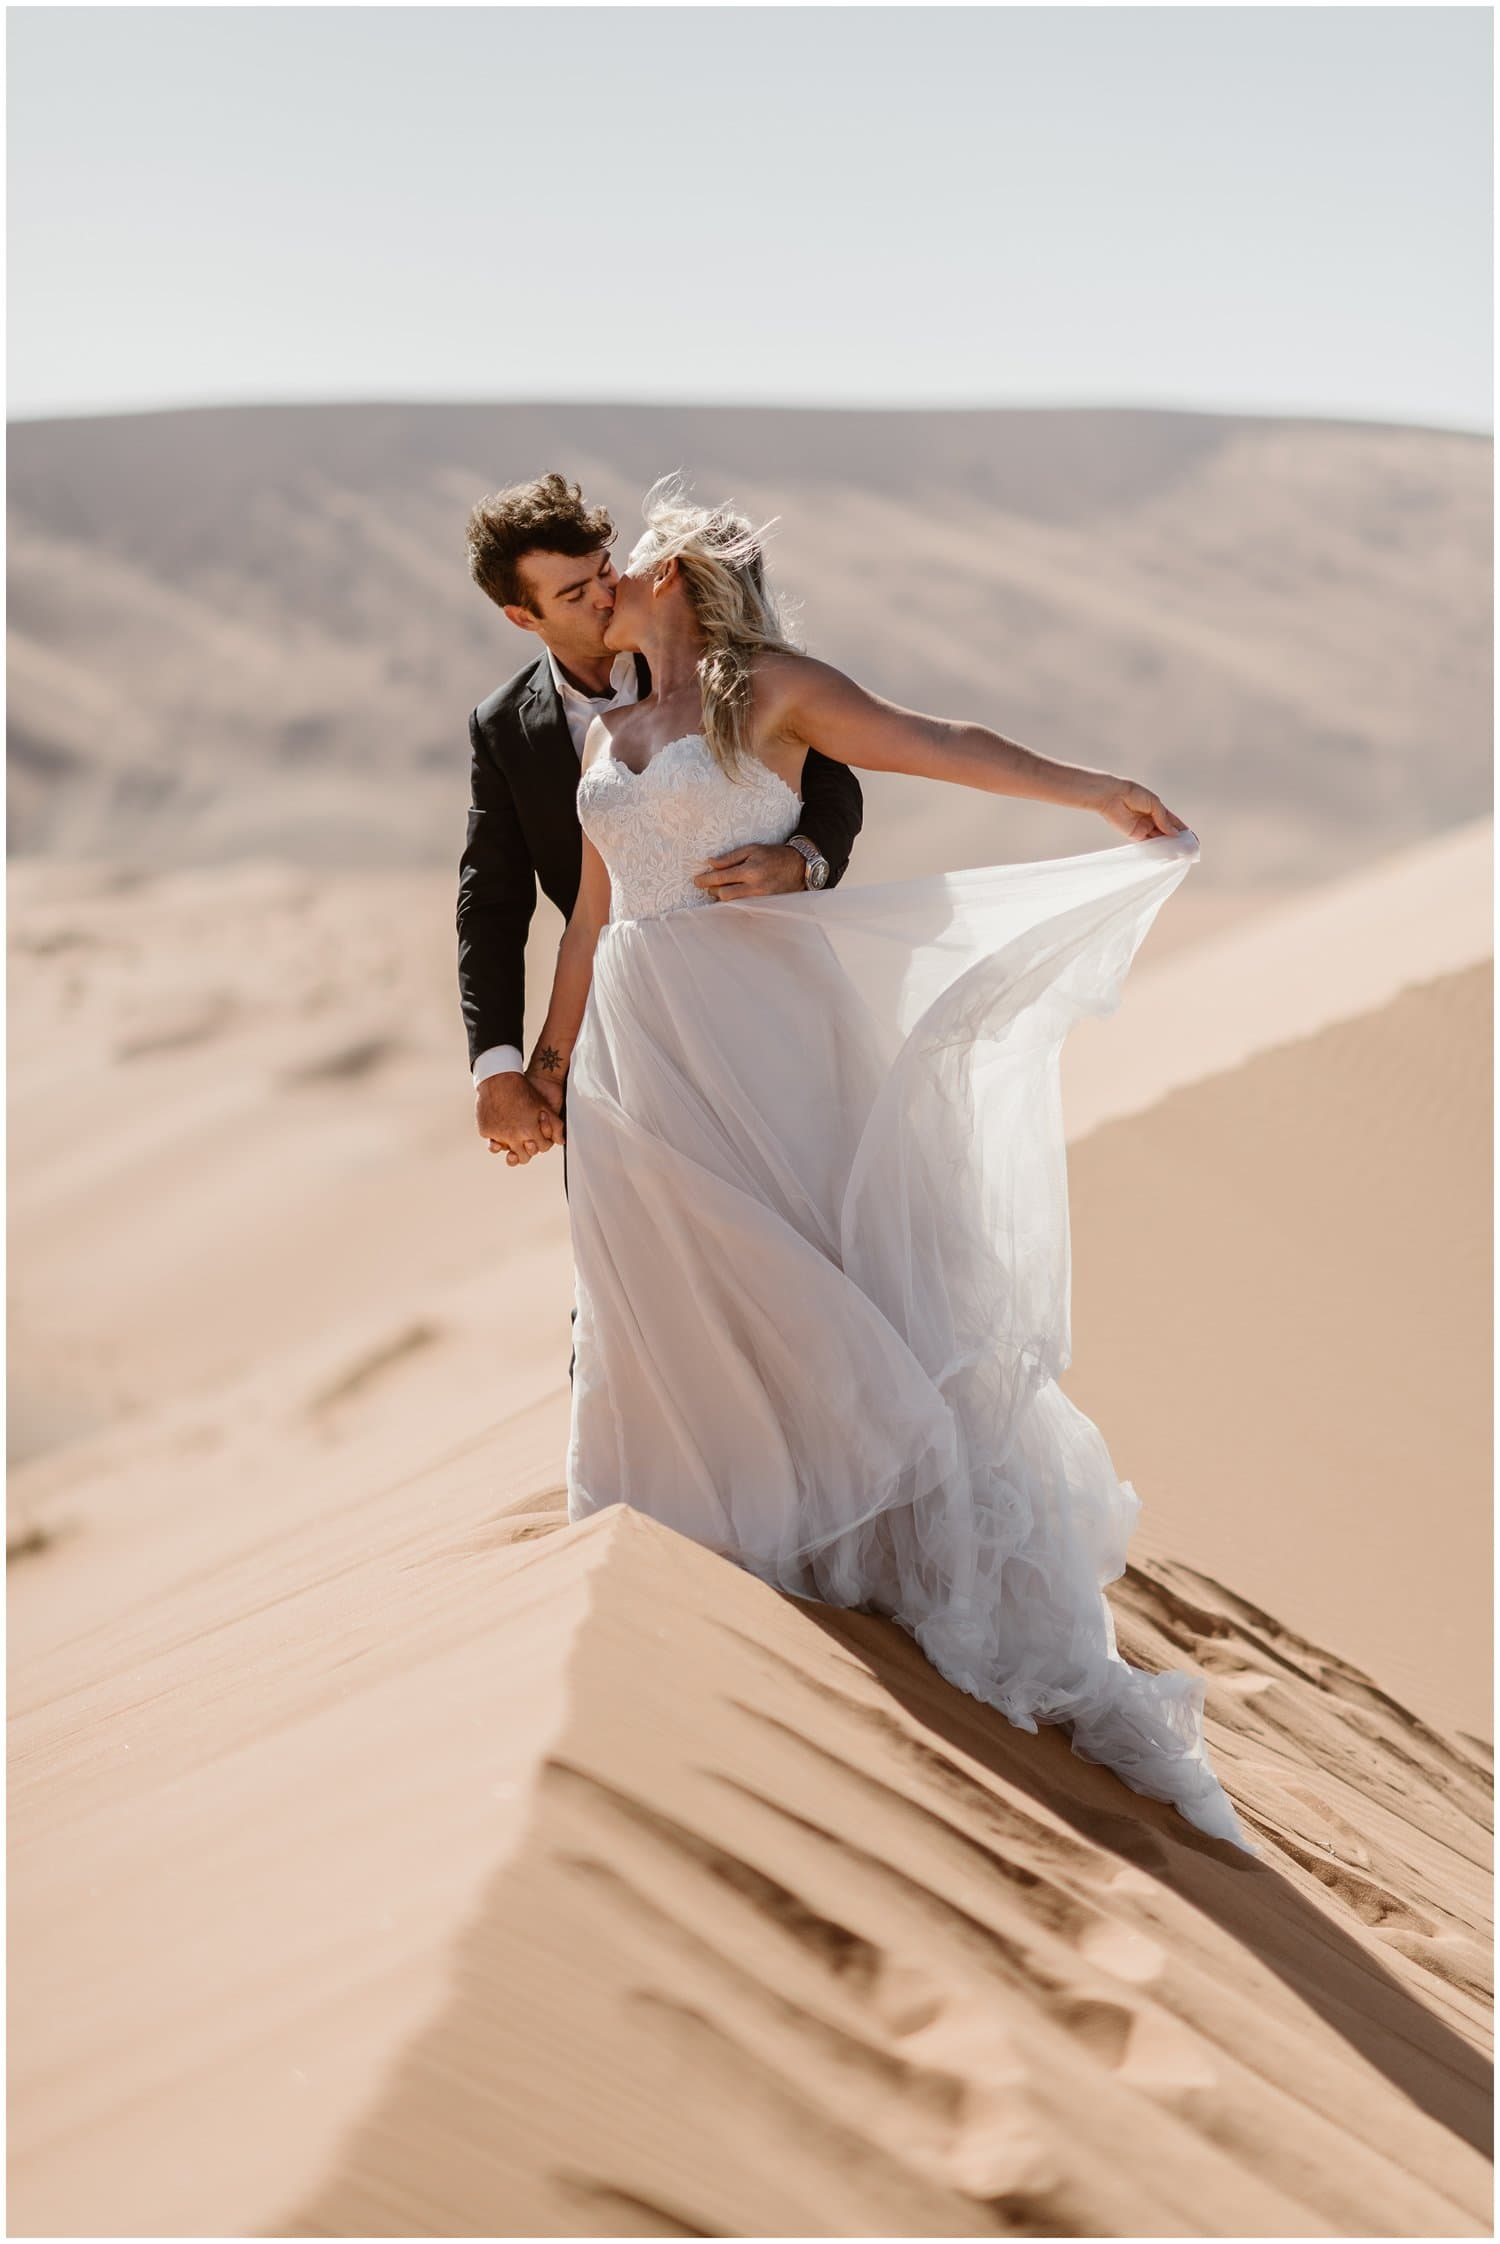 Bride and groom kiss in the desert on their wedding day.